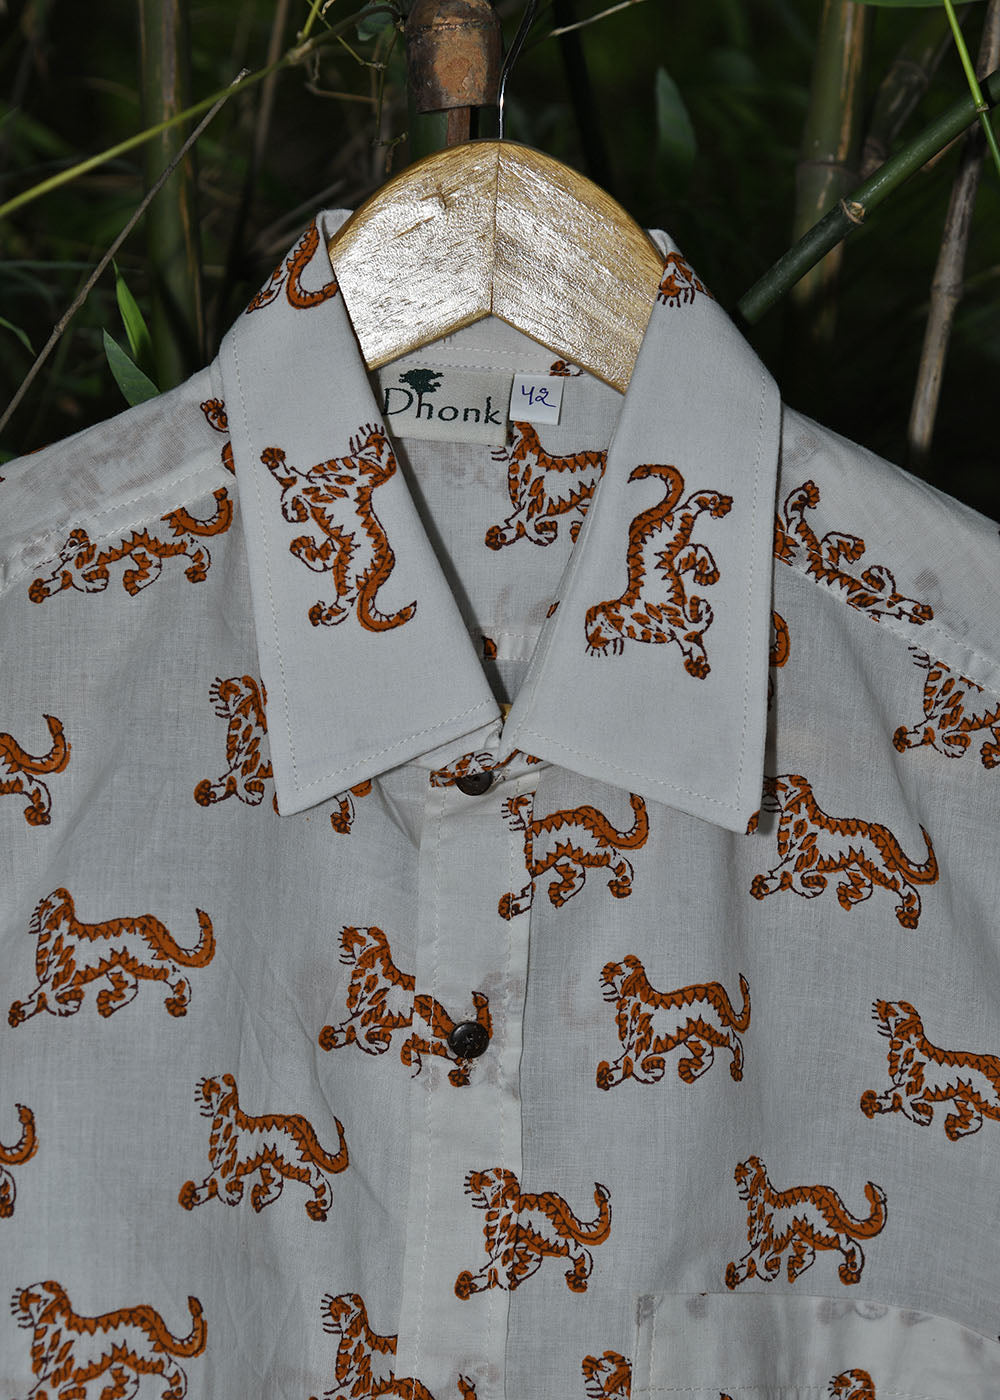 Dhonk Exclusive Shirt - Dhonk Tiger